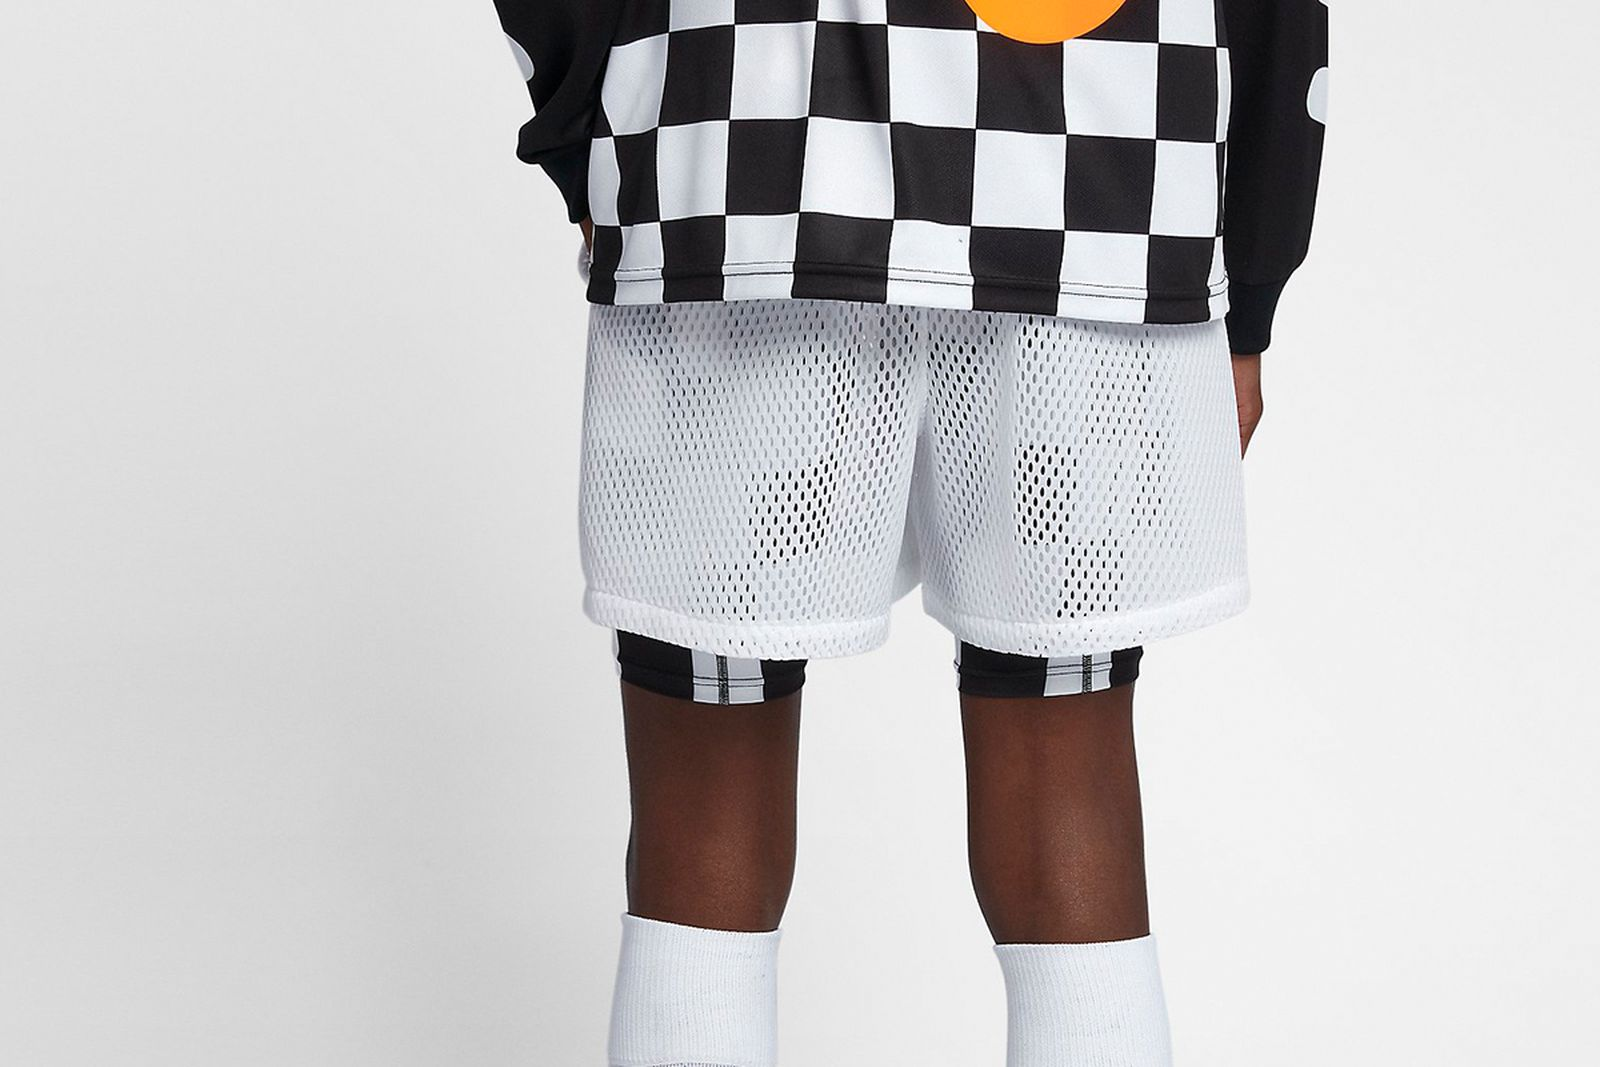 shorts away3 2018 FIFA World Cup Nike OFF-WHITE c/o Virgil Abloh